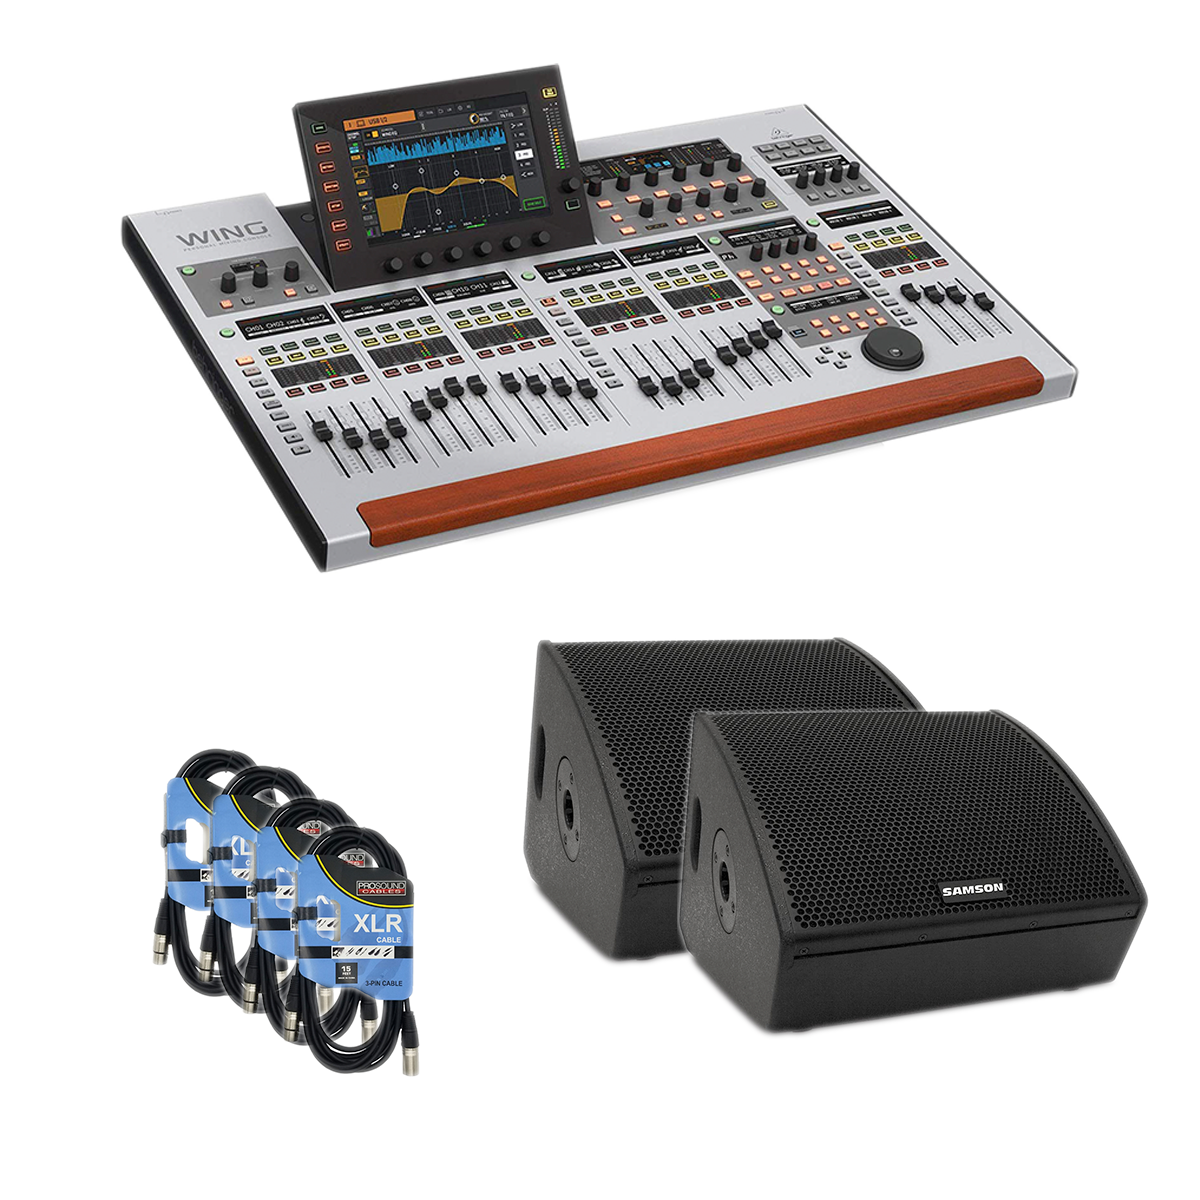 - 3 Behringer WING Mixing Console - Samson RSXM12A Pair - 4 XLR Cable - $3499.99